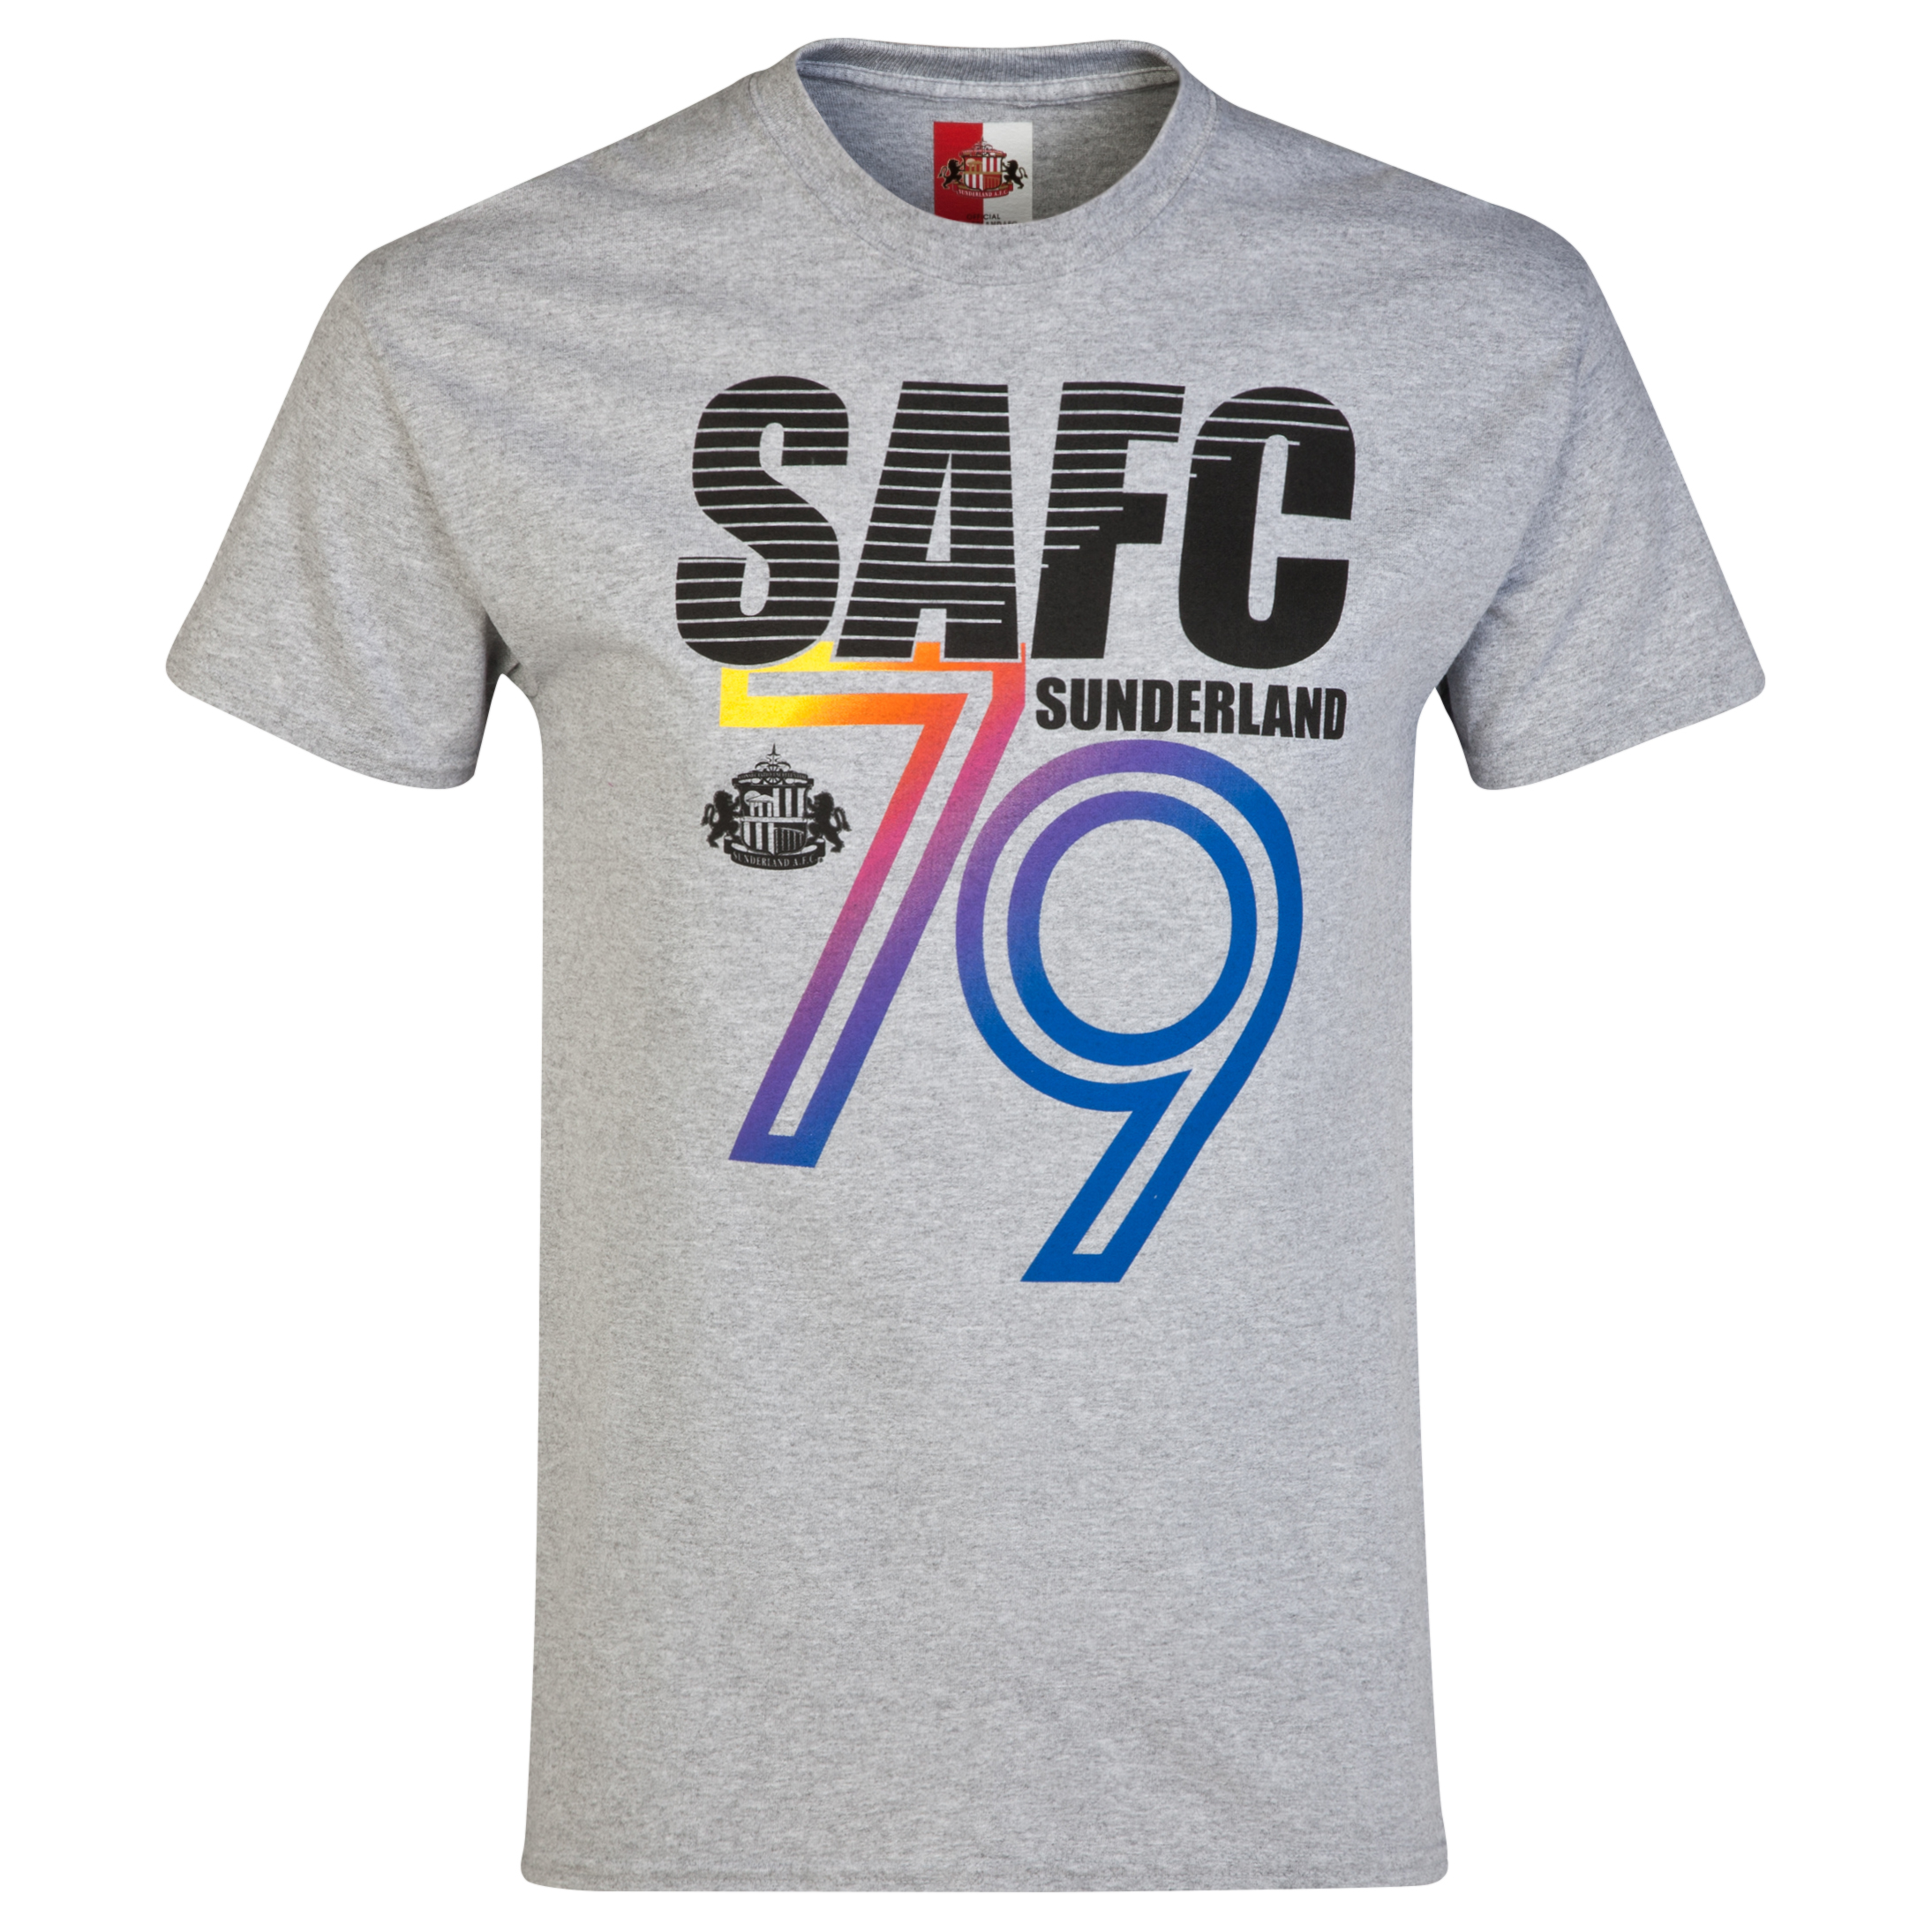 Sunderland 2for?20 79 T-Shirt Grey